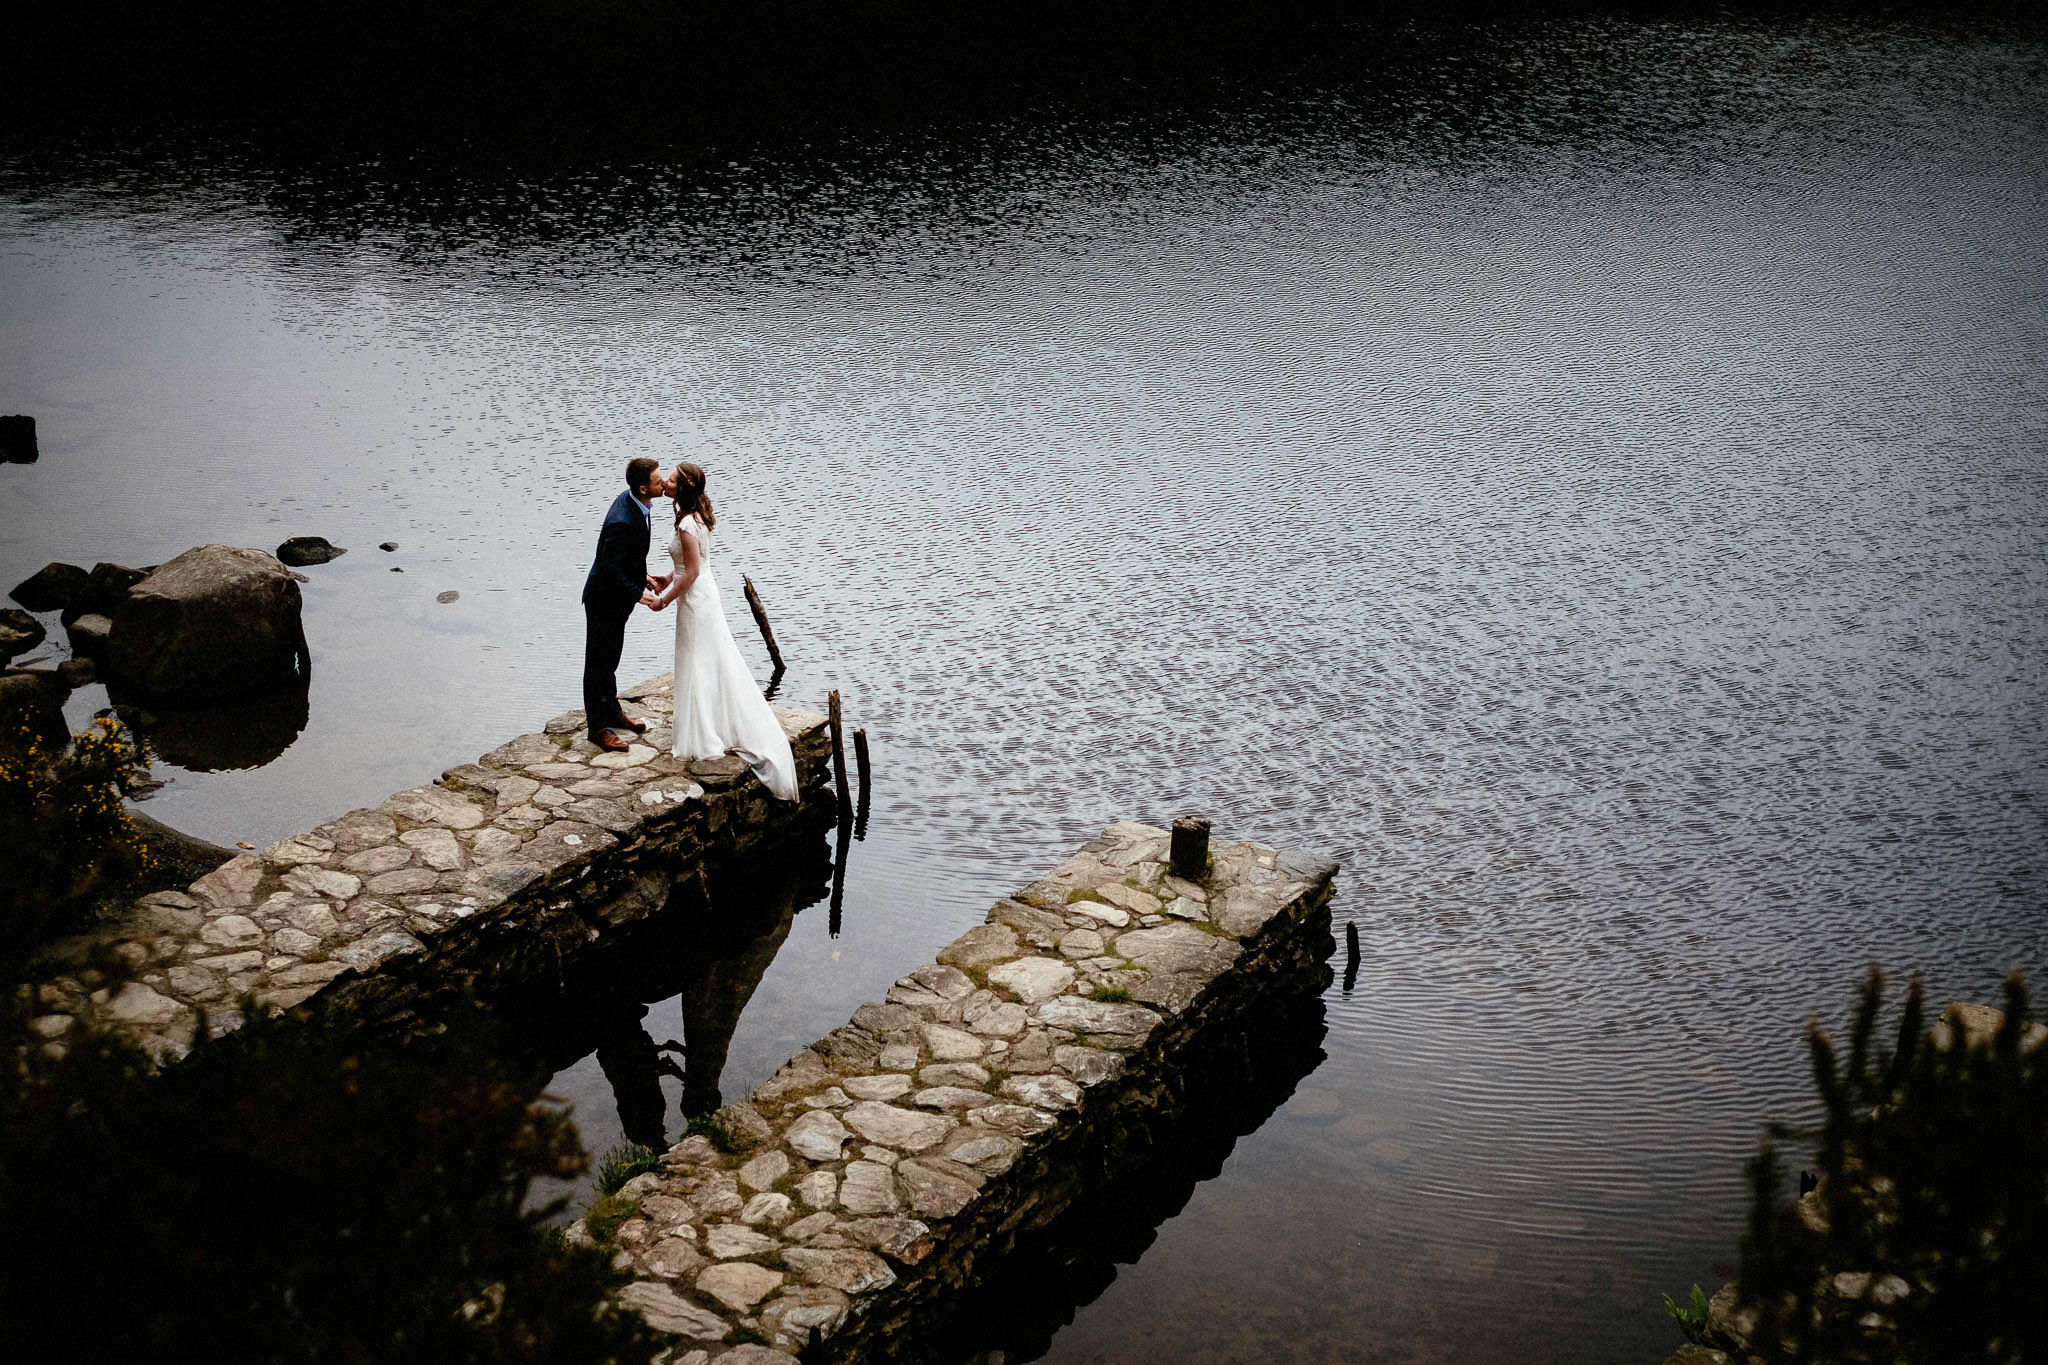 wedding photographers dublin ireland 0060